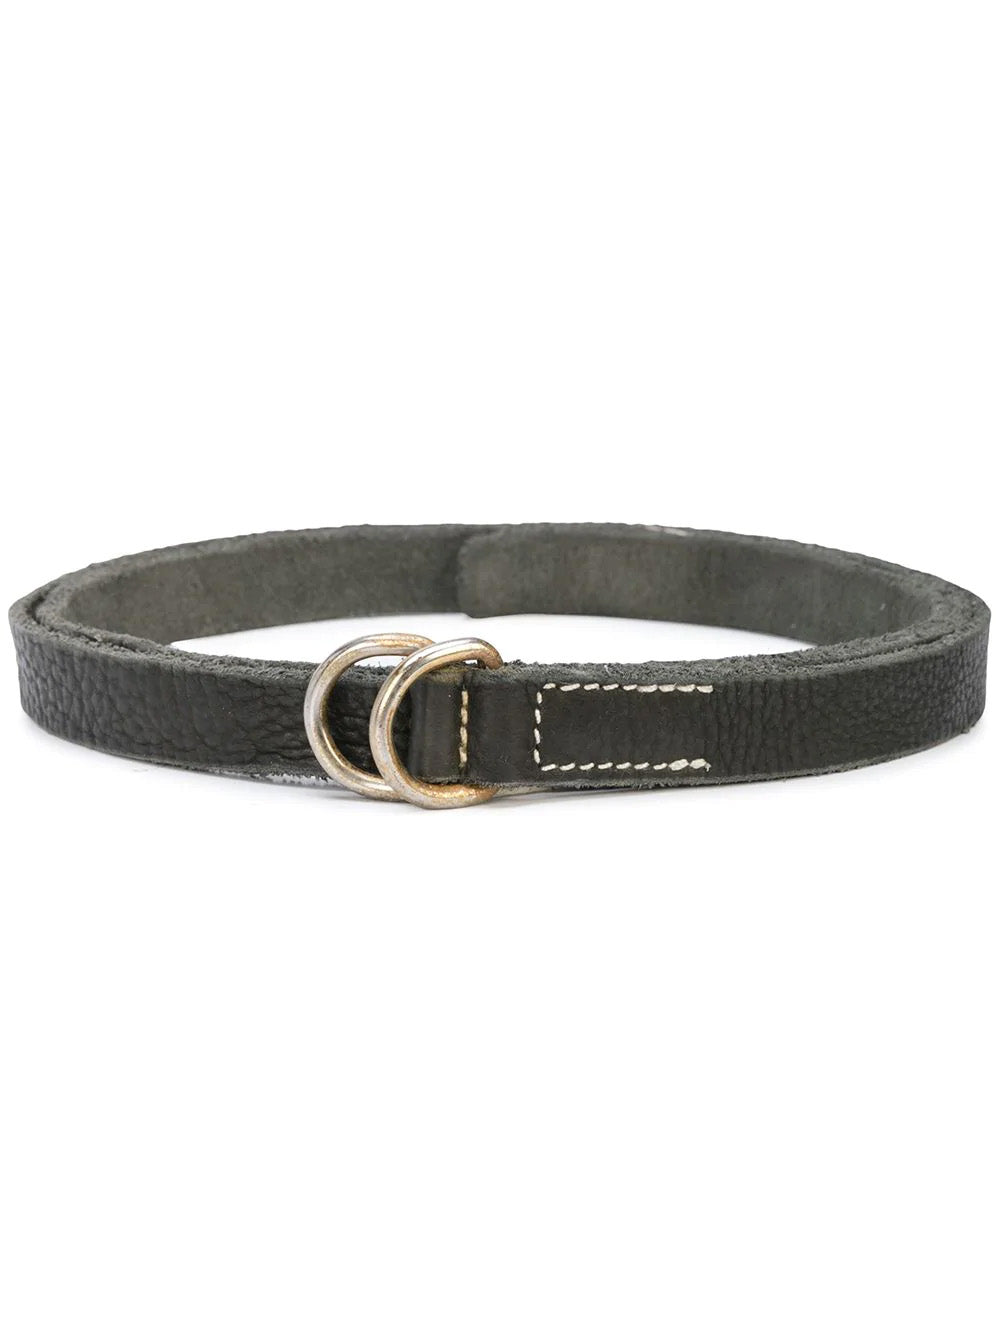 SMALL BISON BELT